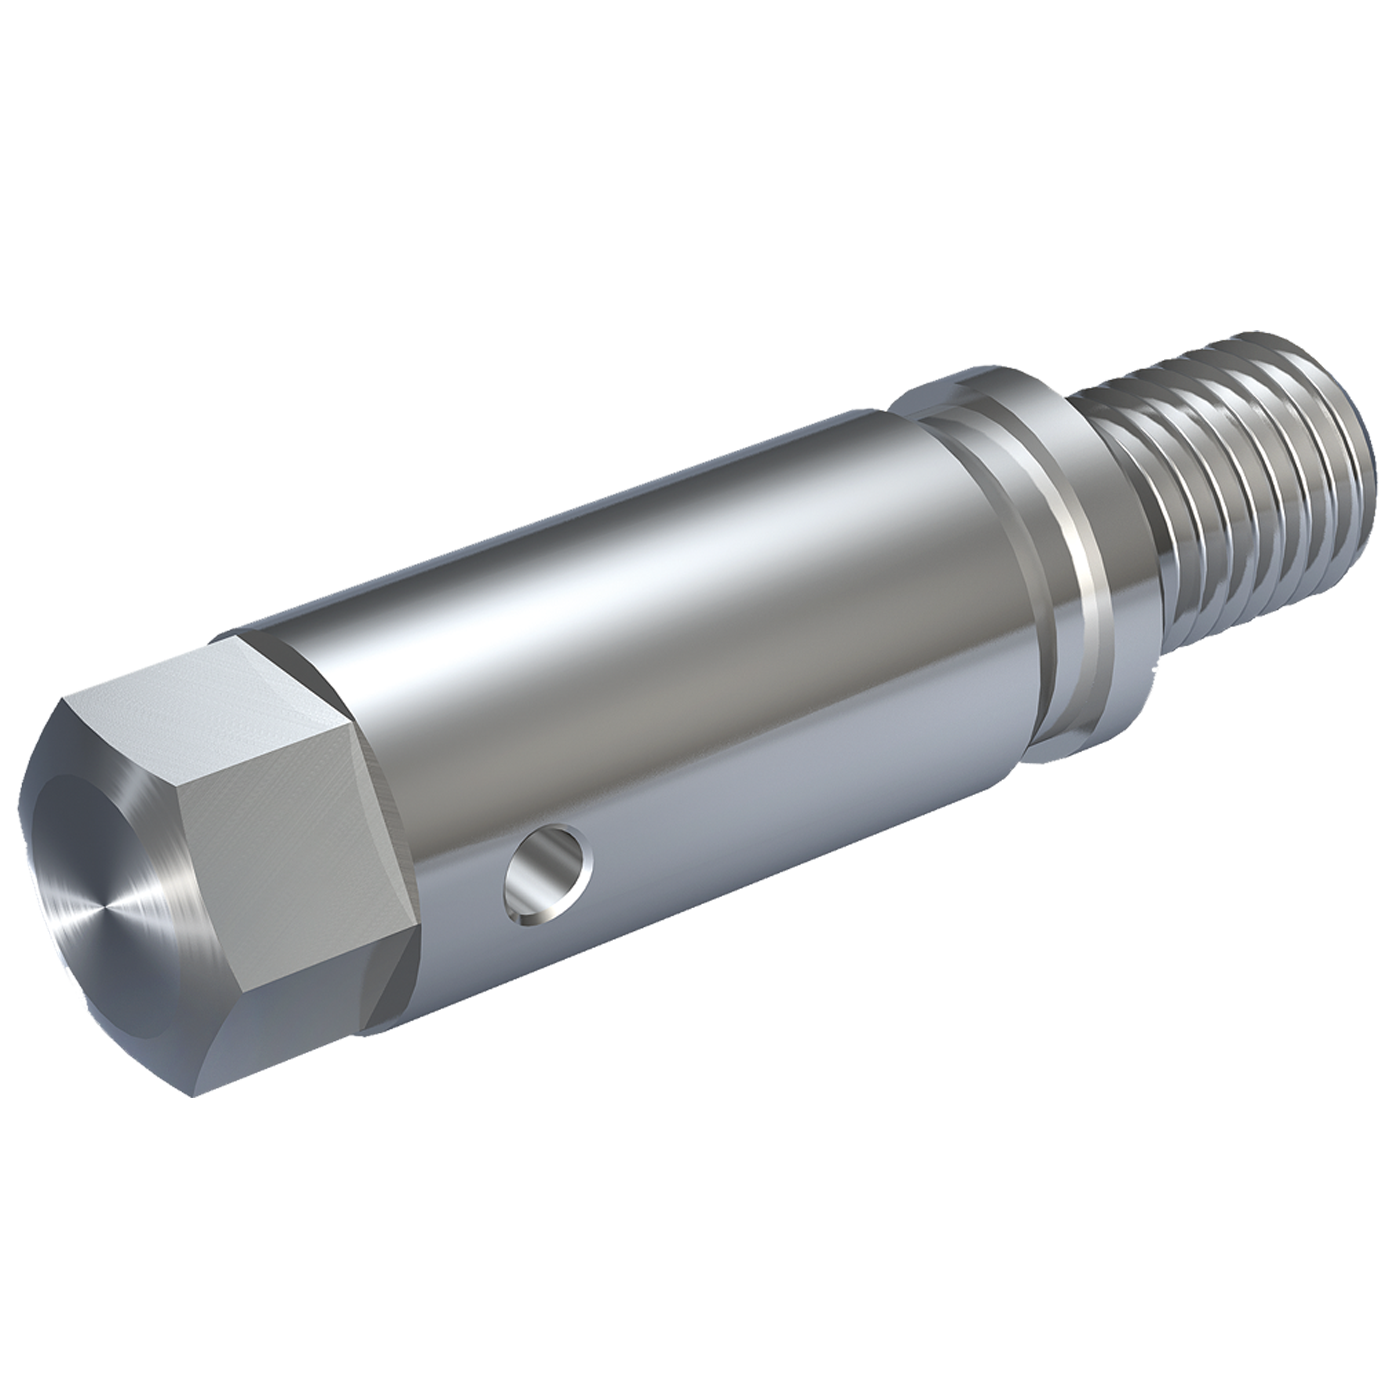 We can produce turned special screws or special screws based on your samples or drawings. During this operation, technically sophisticated production processes ensure that both the product characteristics and your own wishes are respected.